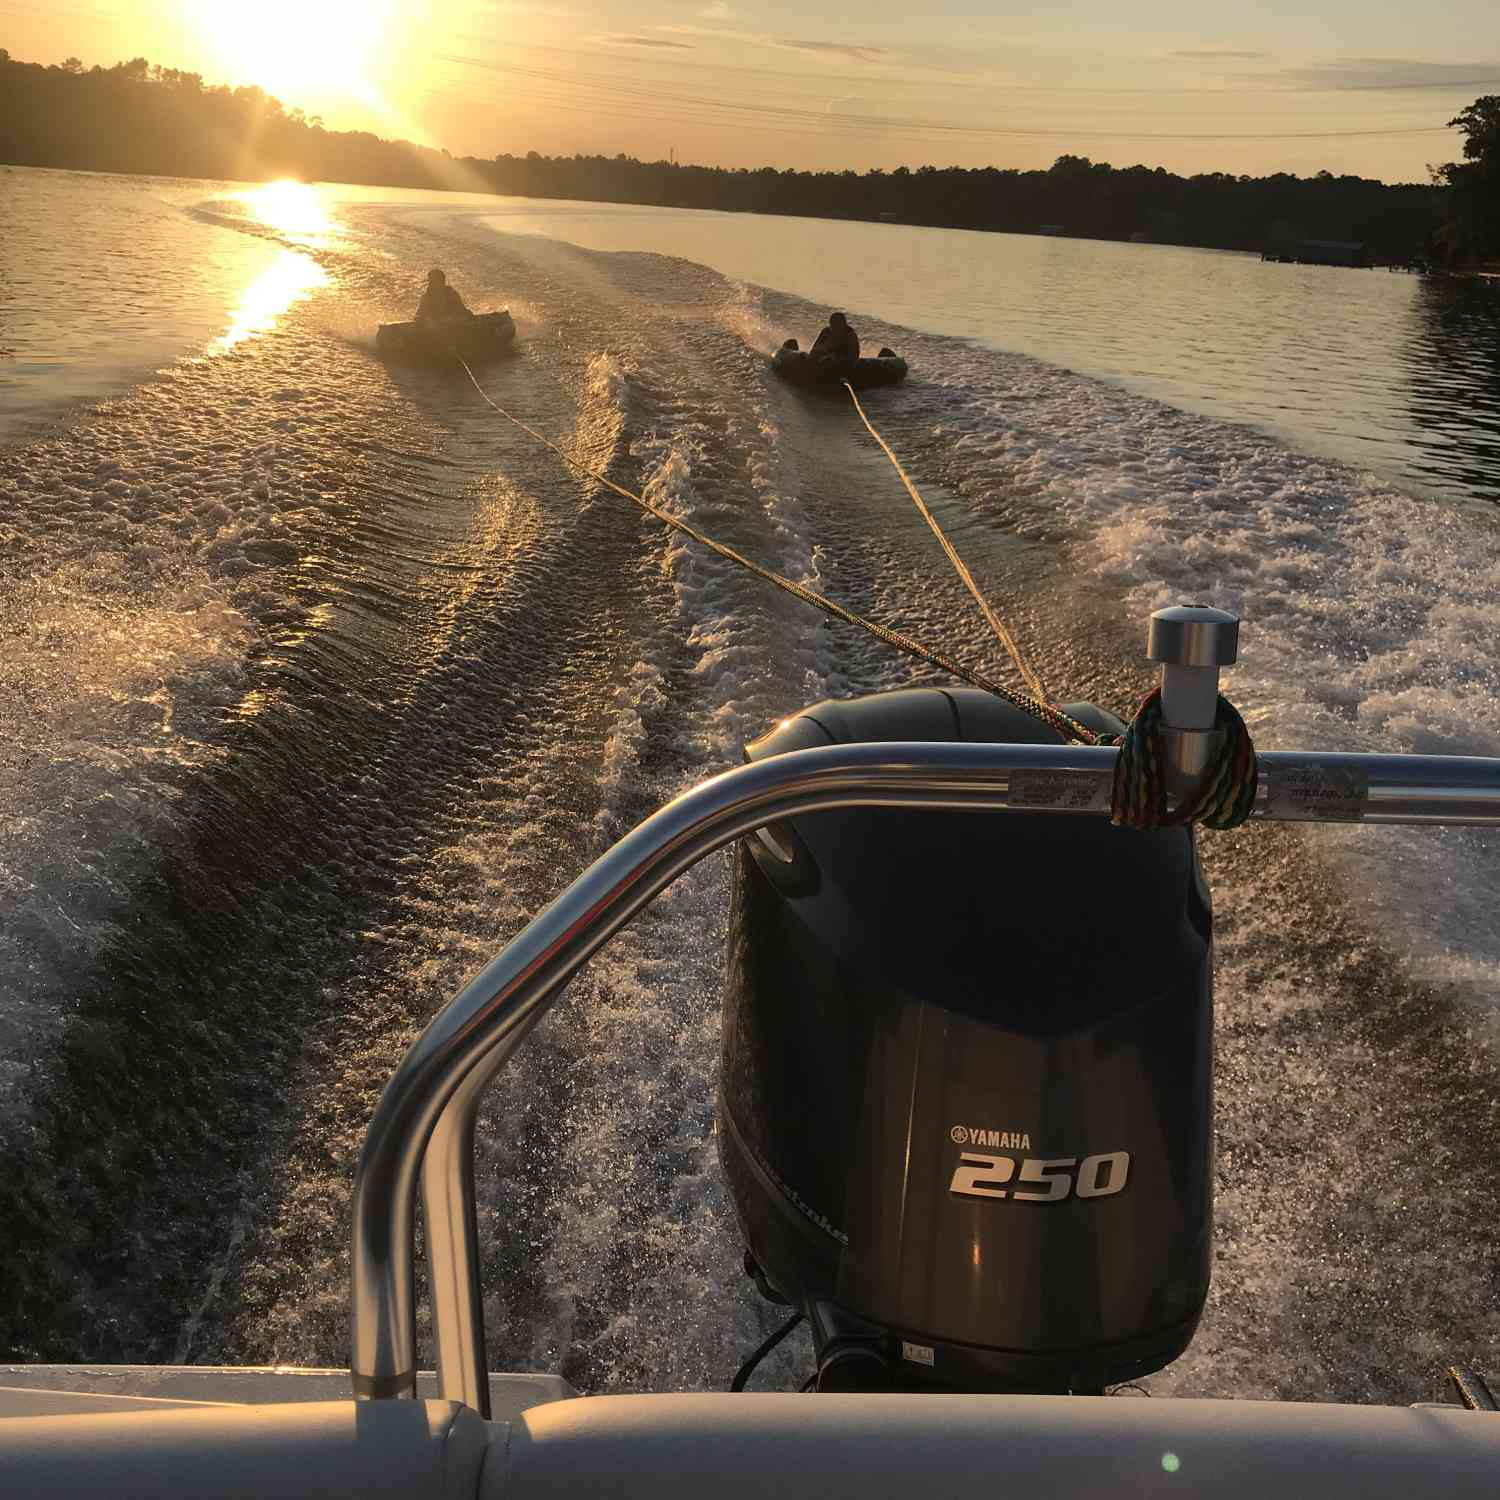 Title: Summer evenings! - On board their Sportsman Heritage 231 Center Console - Location: Lake Wylie, SC. Participating in the Photo Contest #SportsmanJune2018